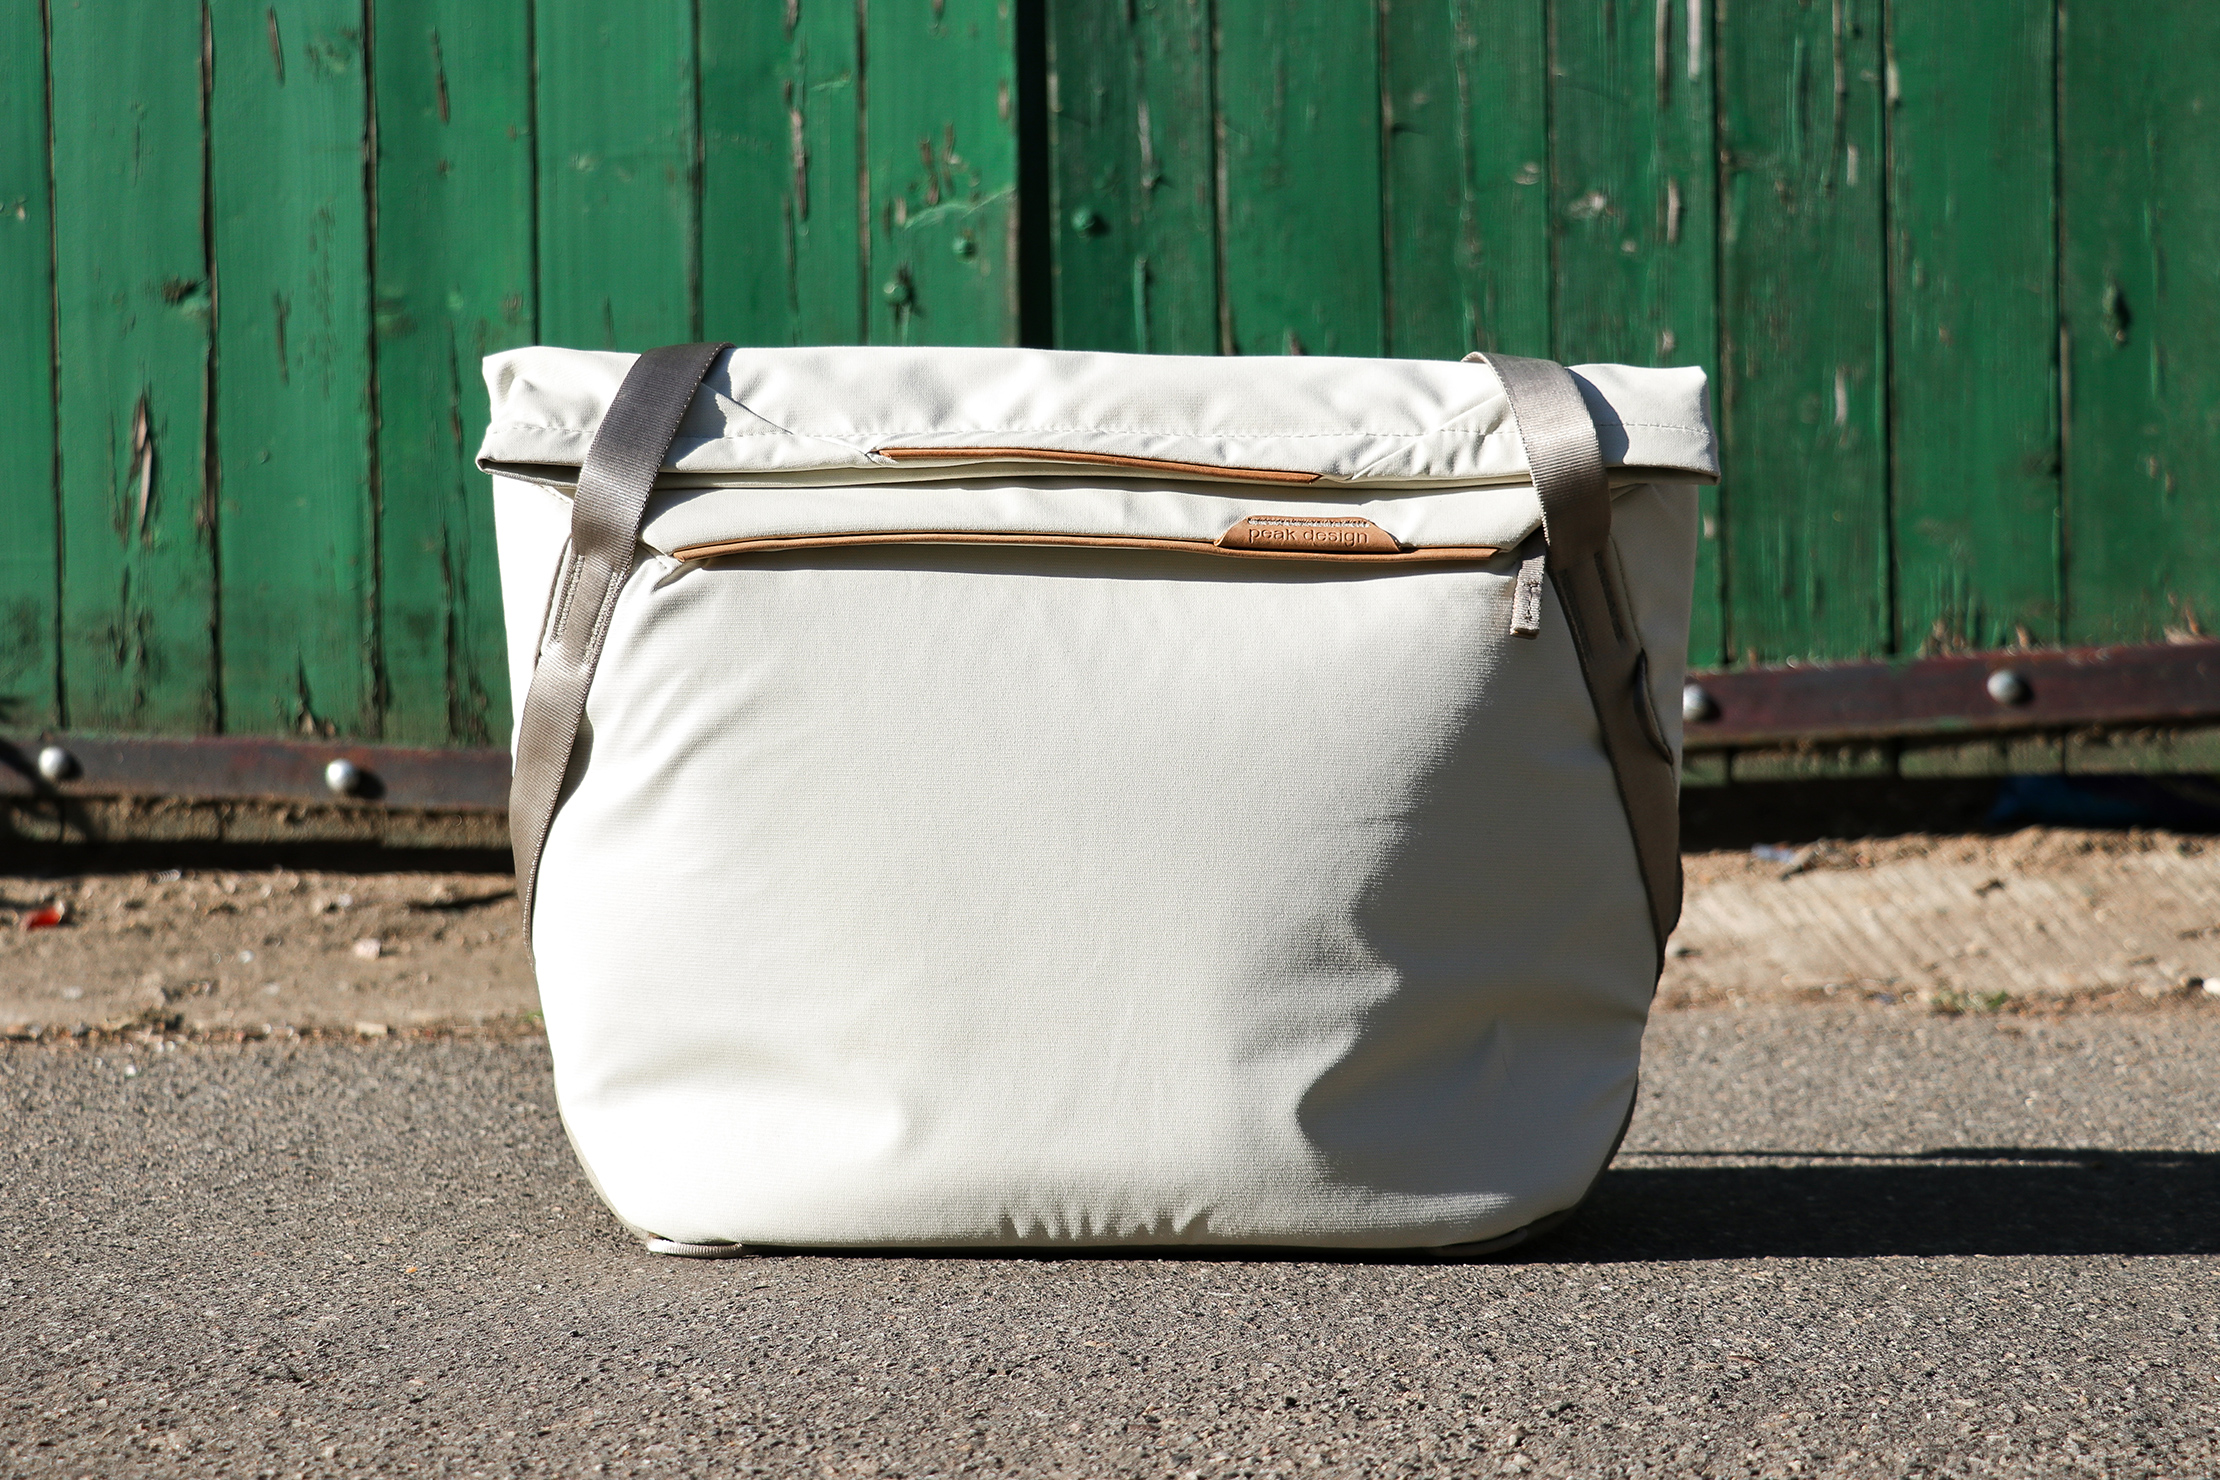 Peak Design Everyday Tote 15L V2 Standing Up On Its Own